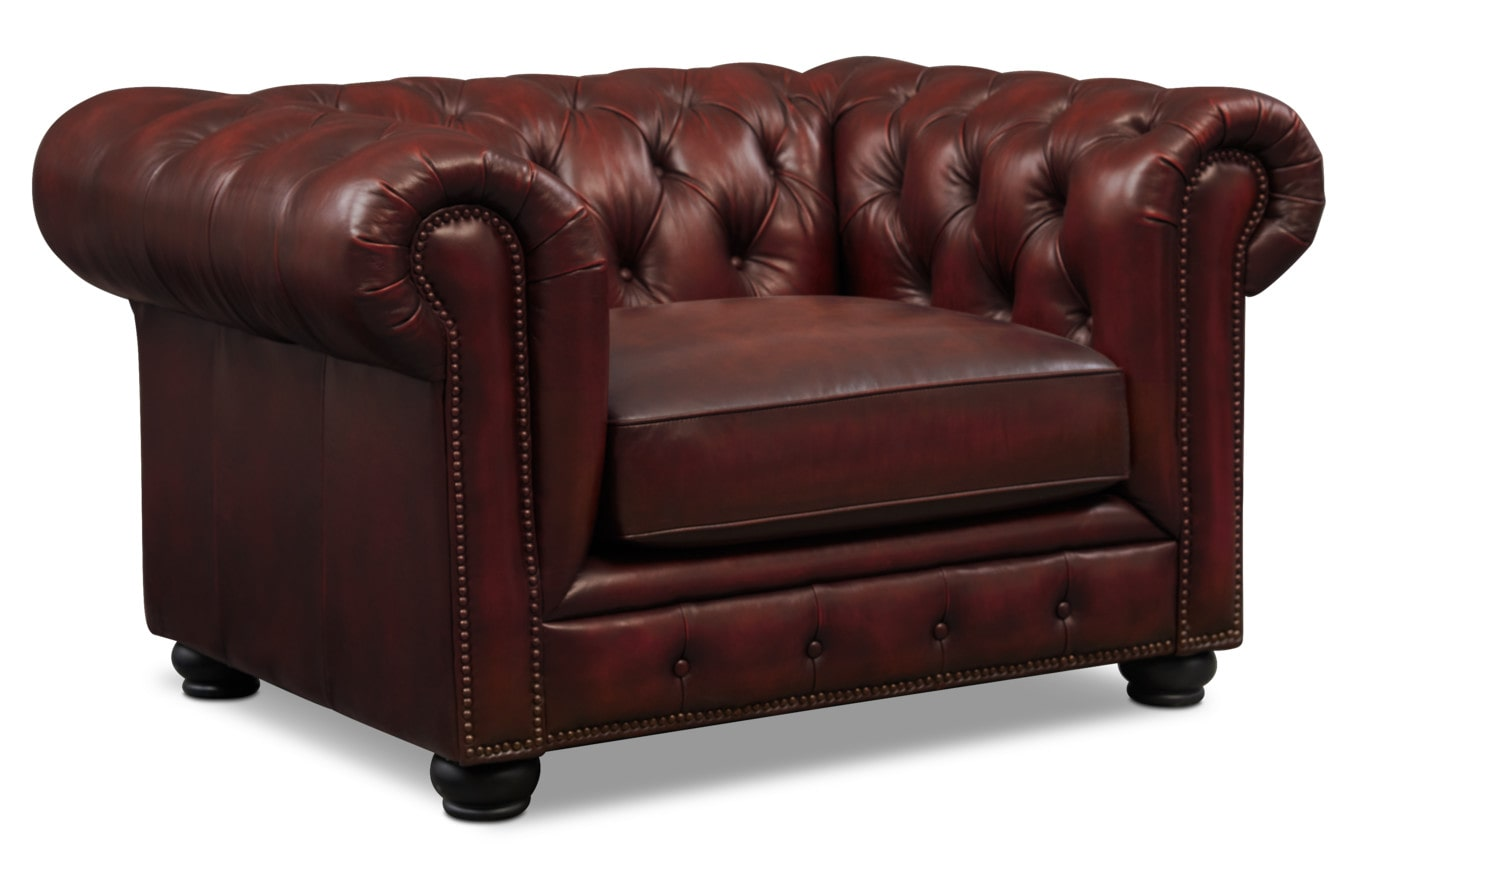 Living Room Furniture   Lexington Chair   Leather